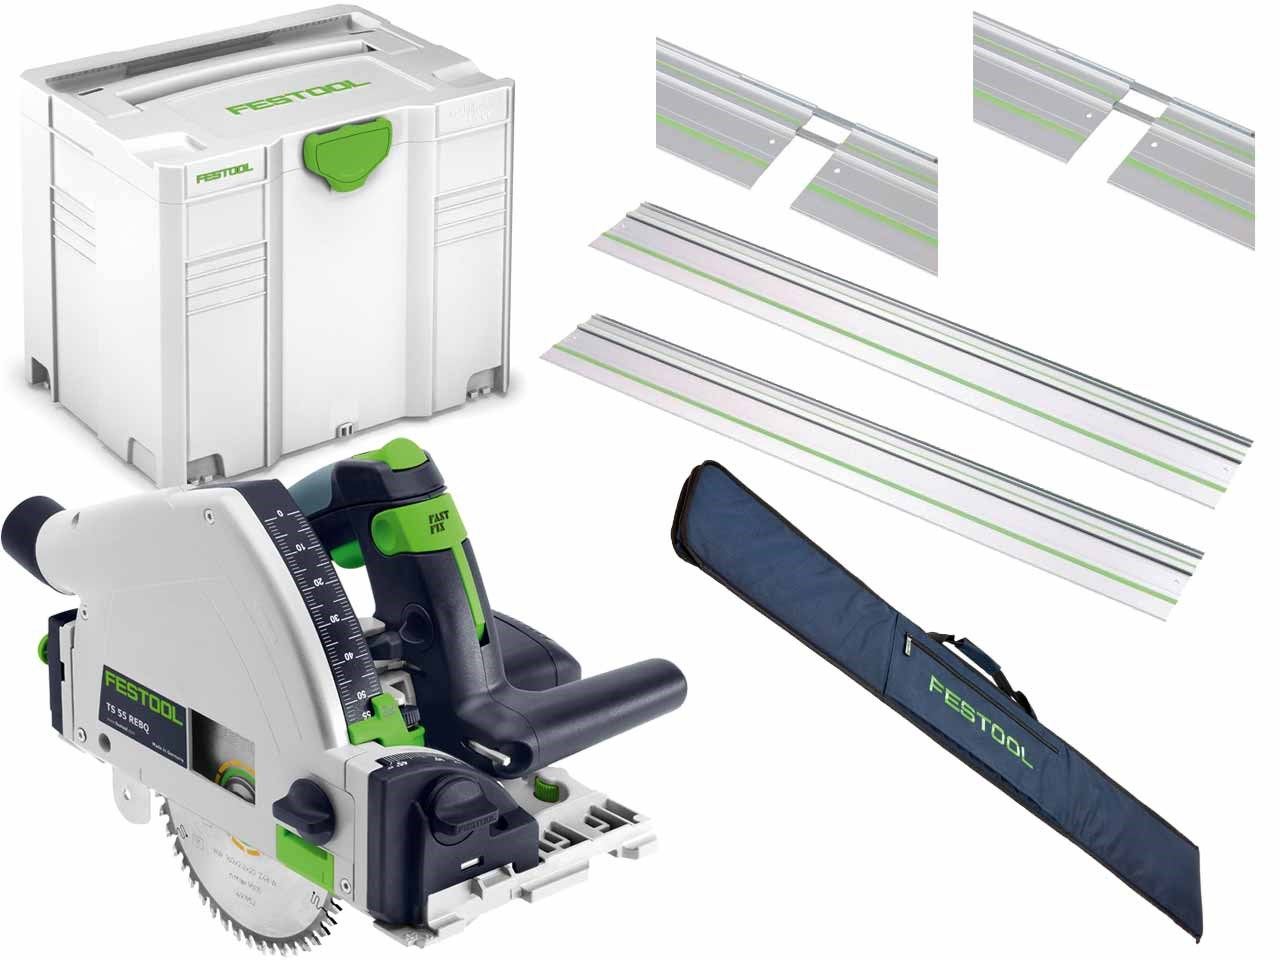 Festool Ts55r 240v Plunge Saw With 2x Fs1400 2x Fsv Plus